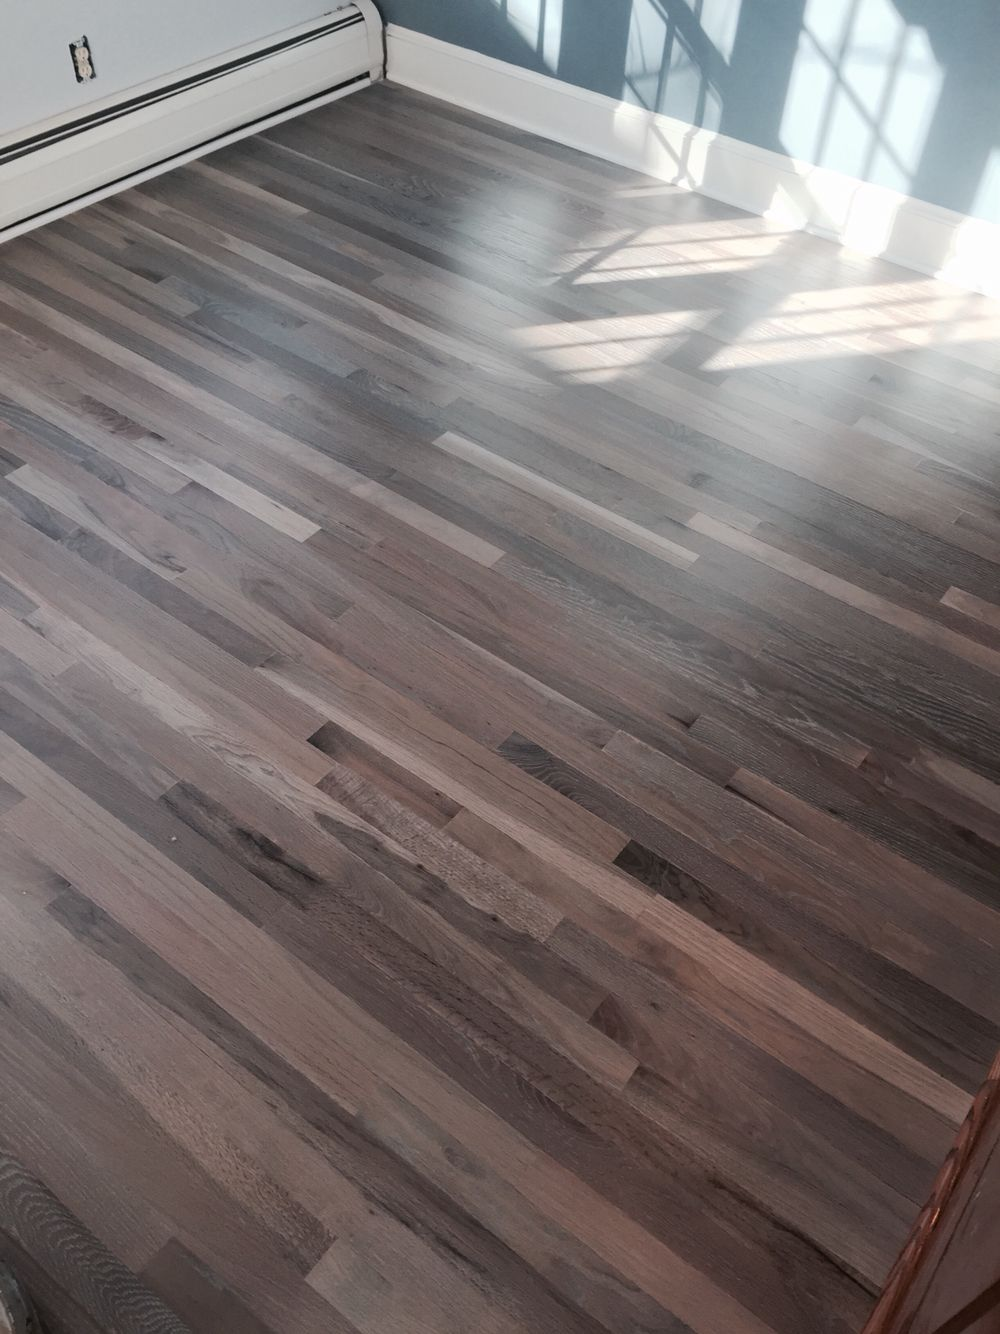 Refinished Red Oak Flooring With Rubio Fumed And Rubio 5